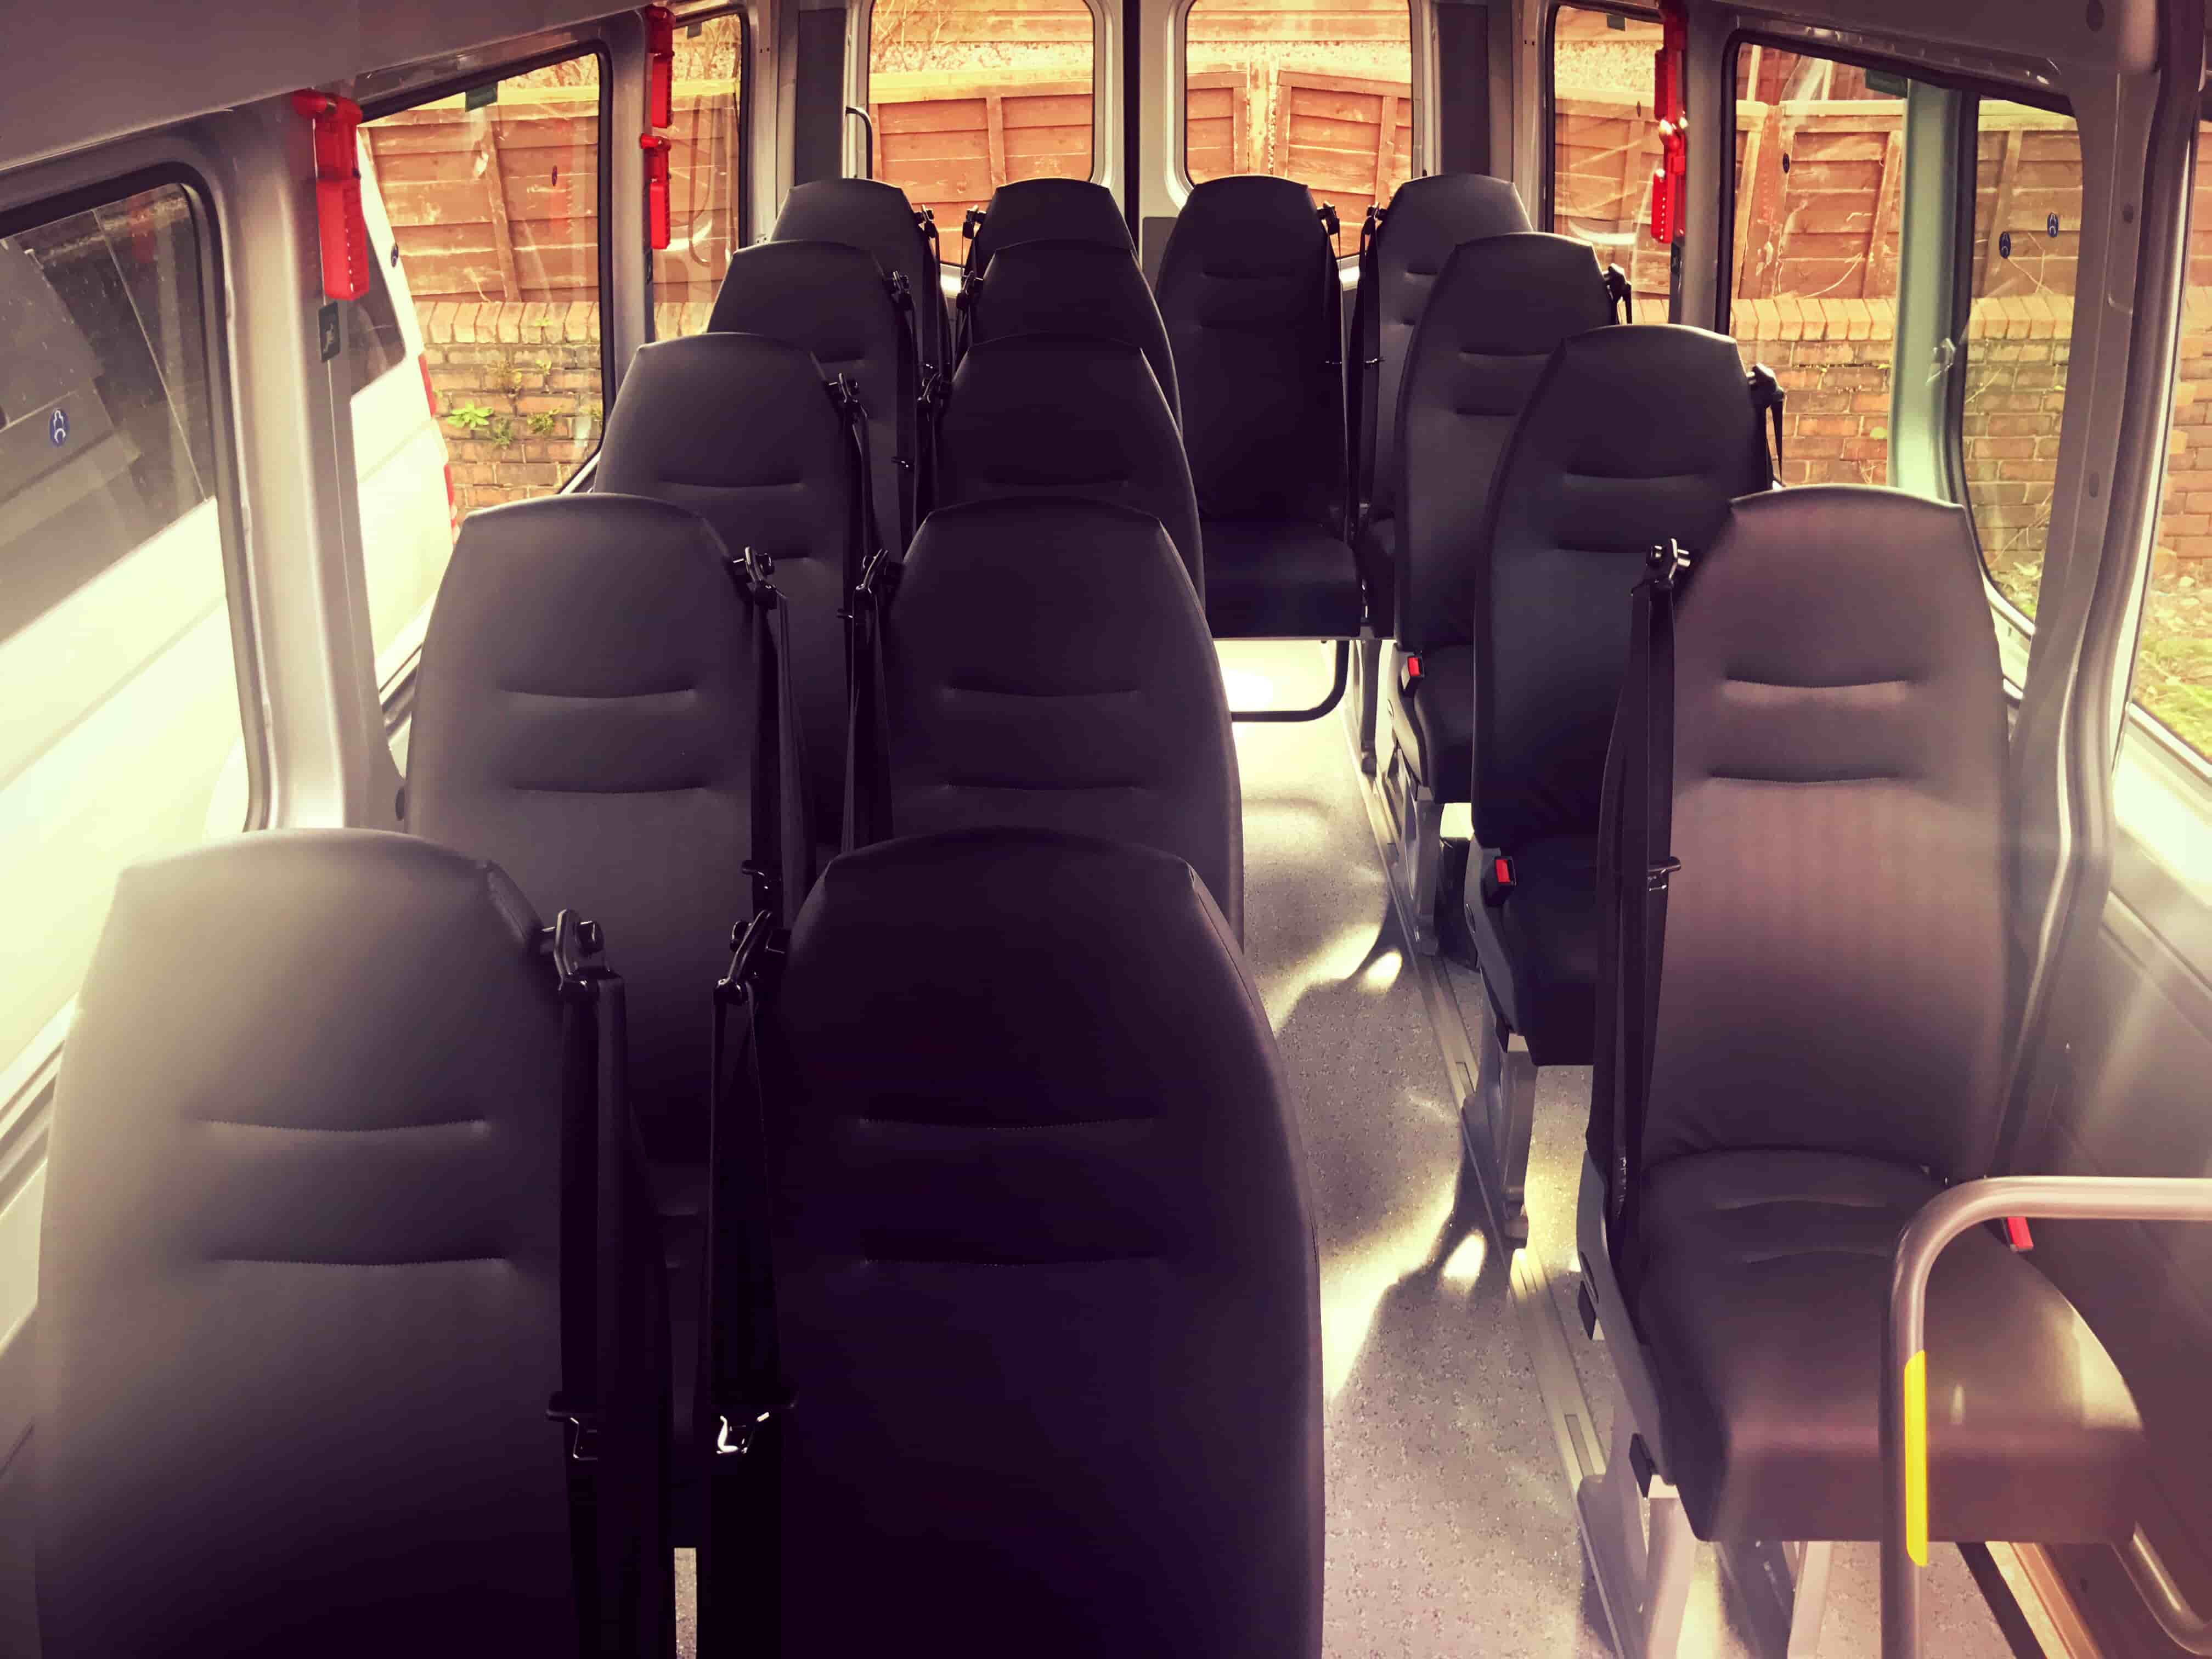 2017 Sprinter Minibus Hire inside view from front